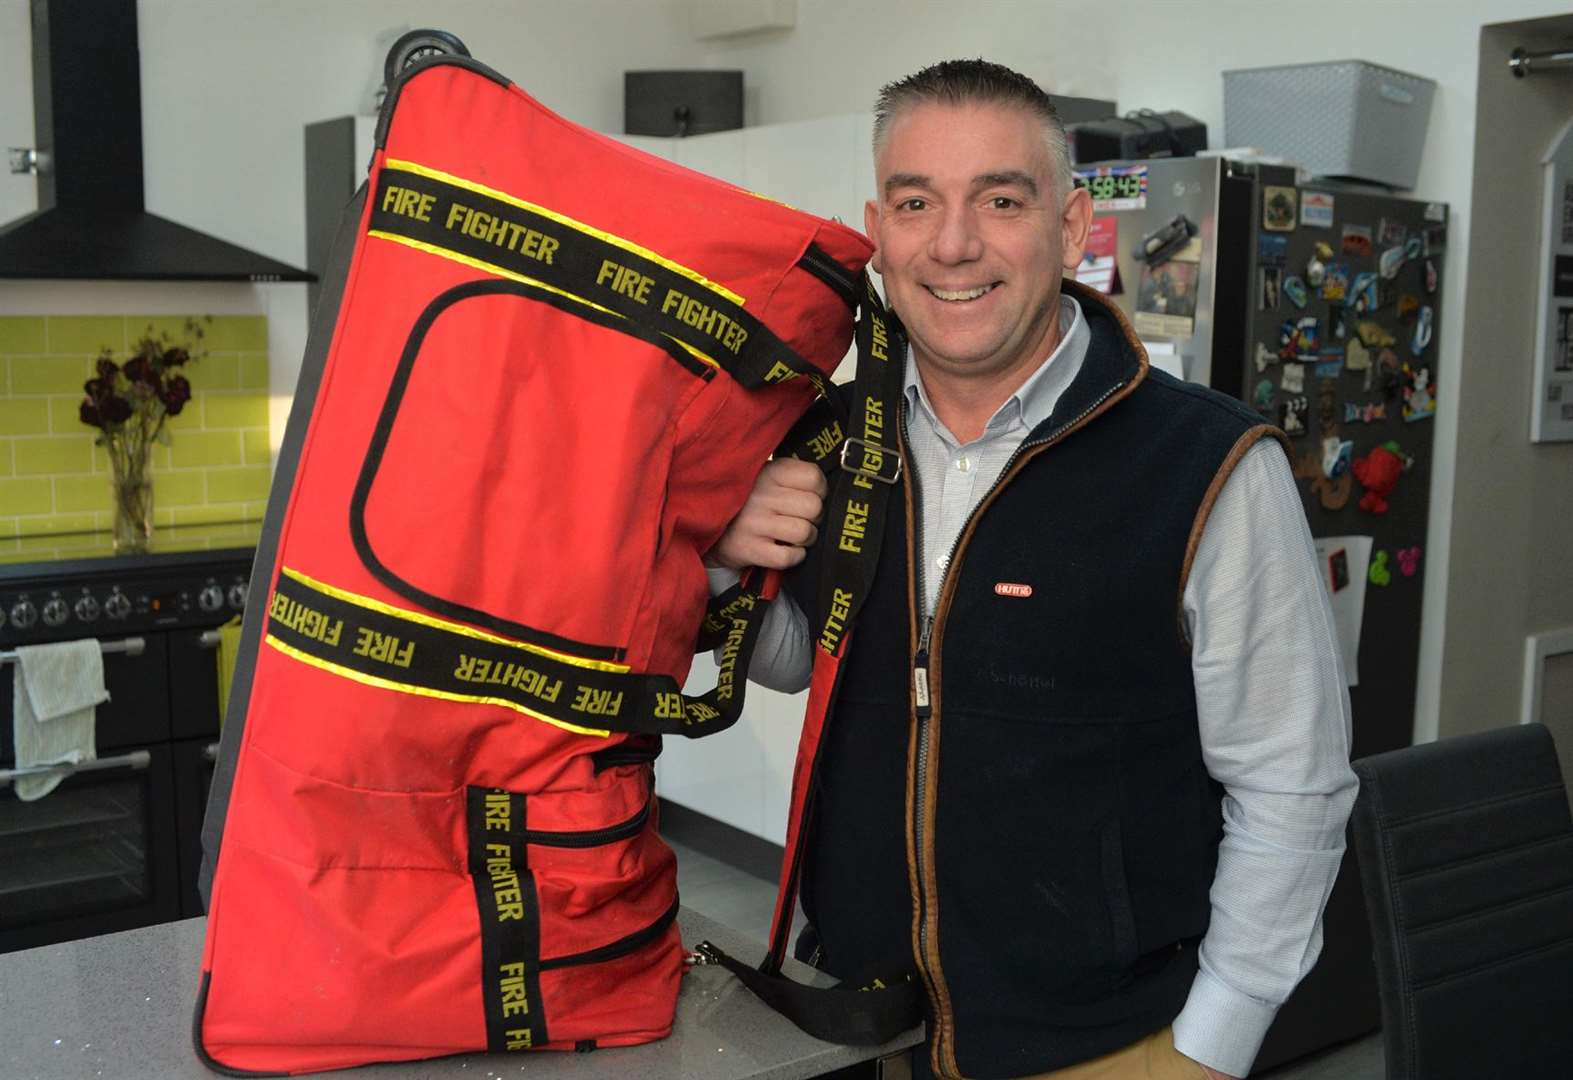 Newmarket firefighter Mick setting off to Australia to help in the aftermath of devastating wildfires